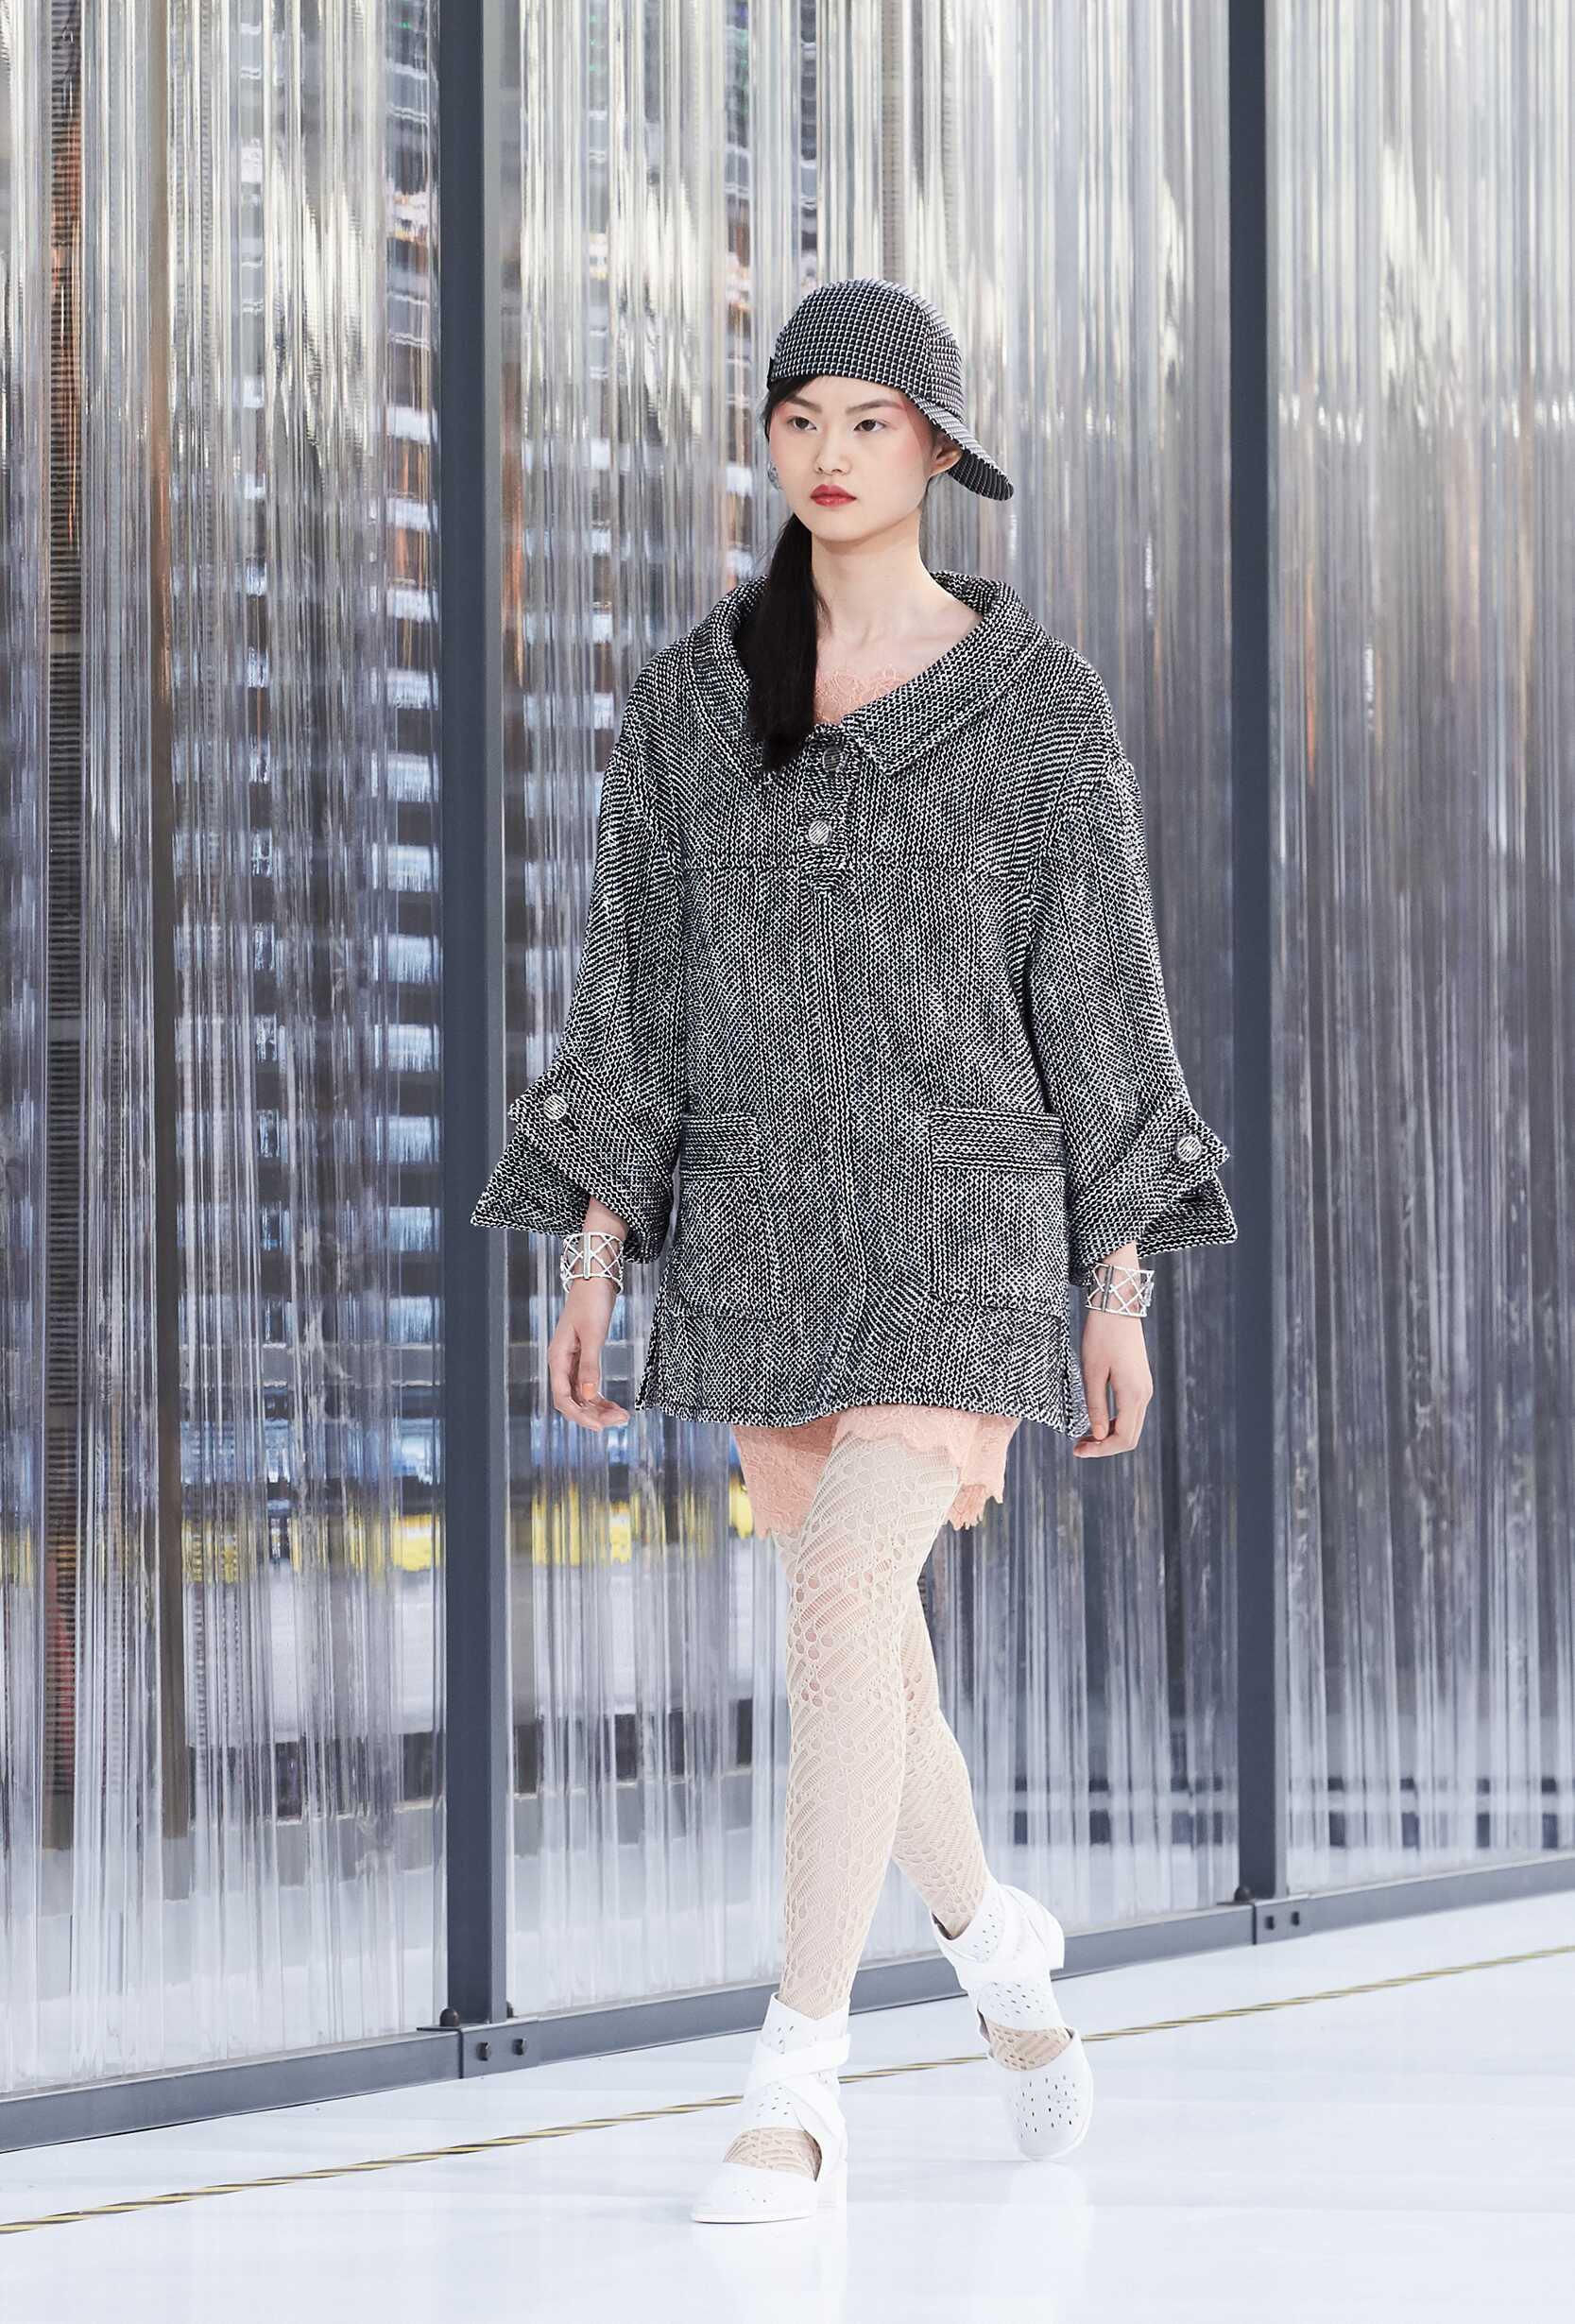 Womenswear Fashion 2017 Catwalk Chanel